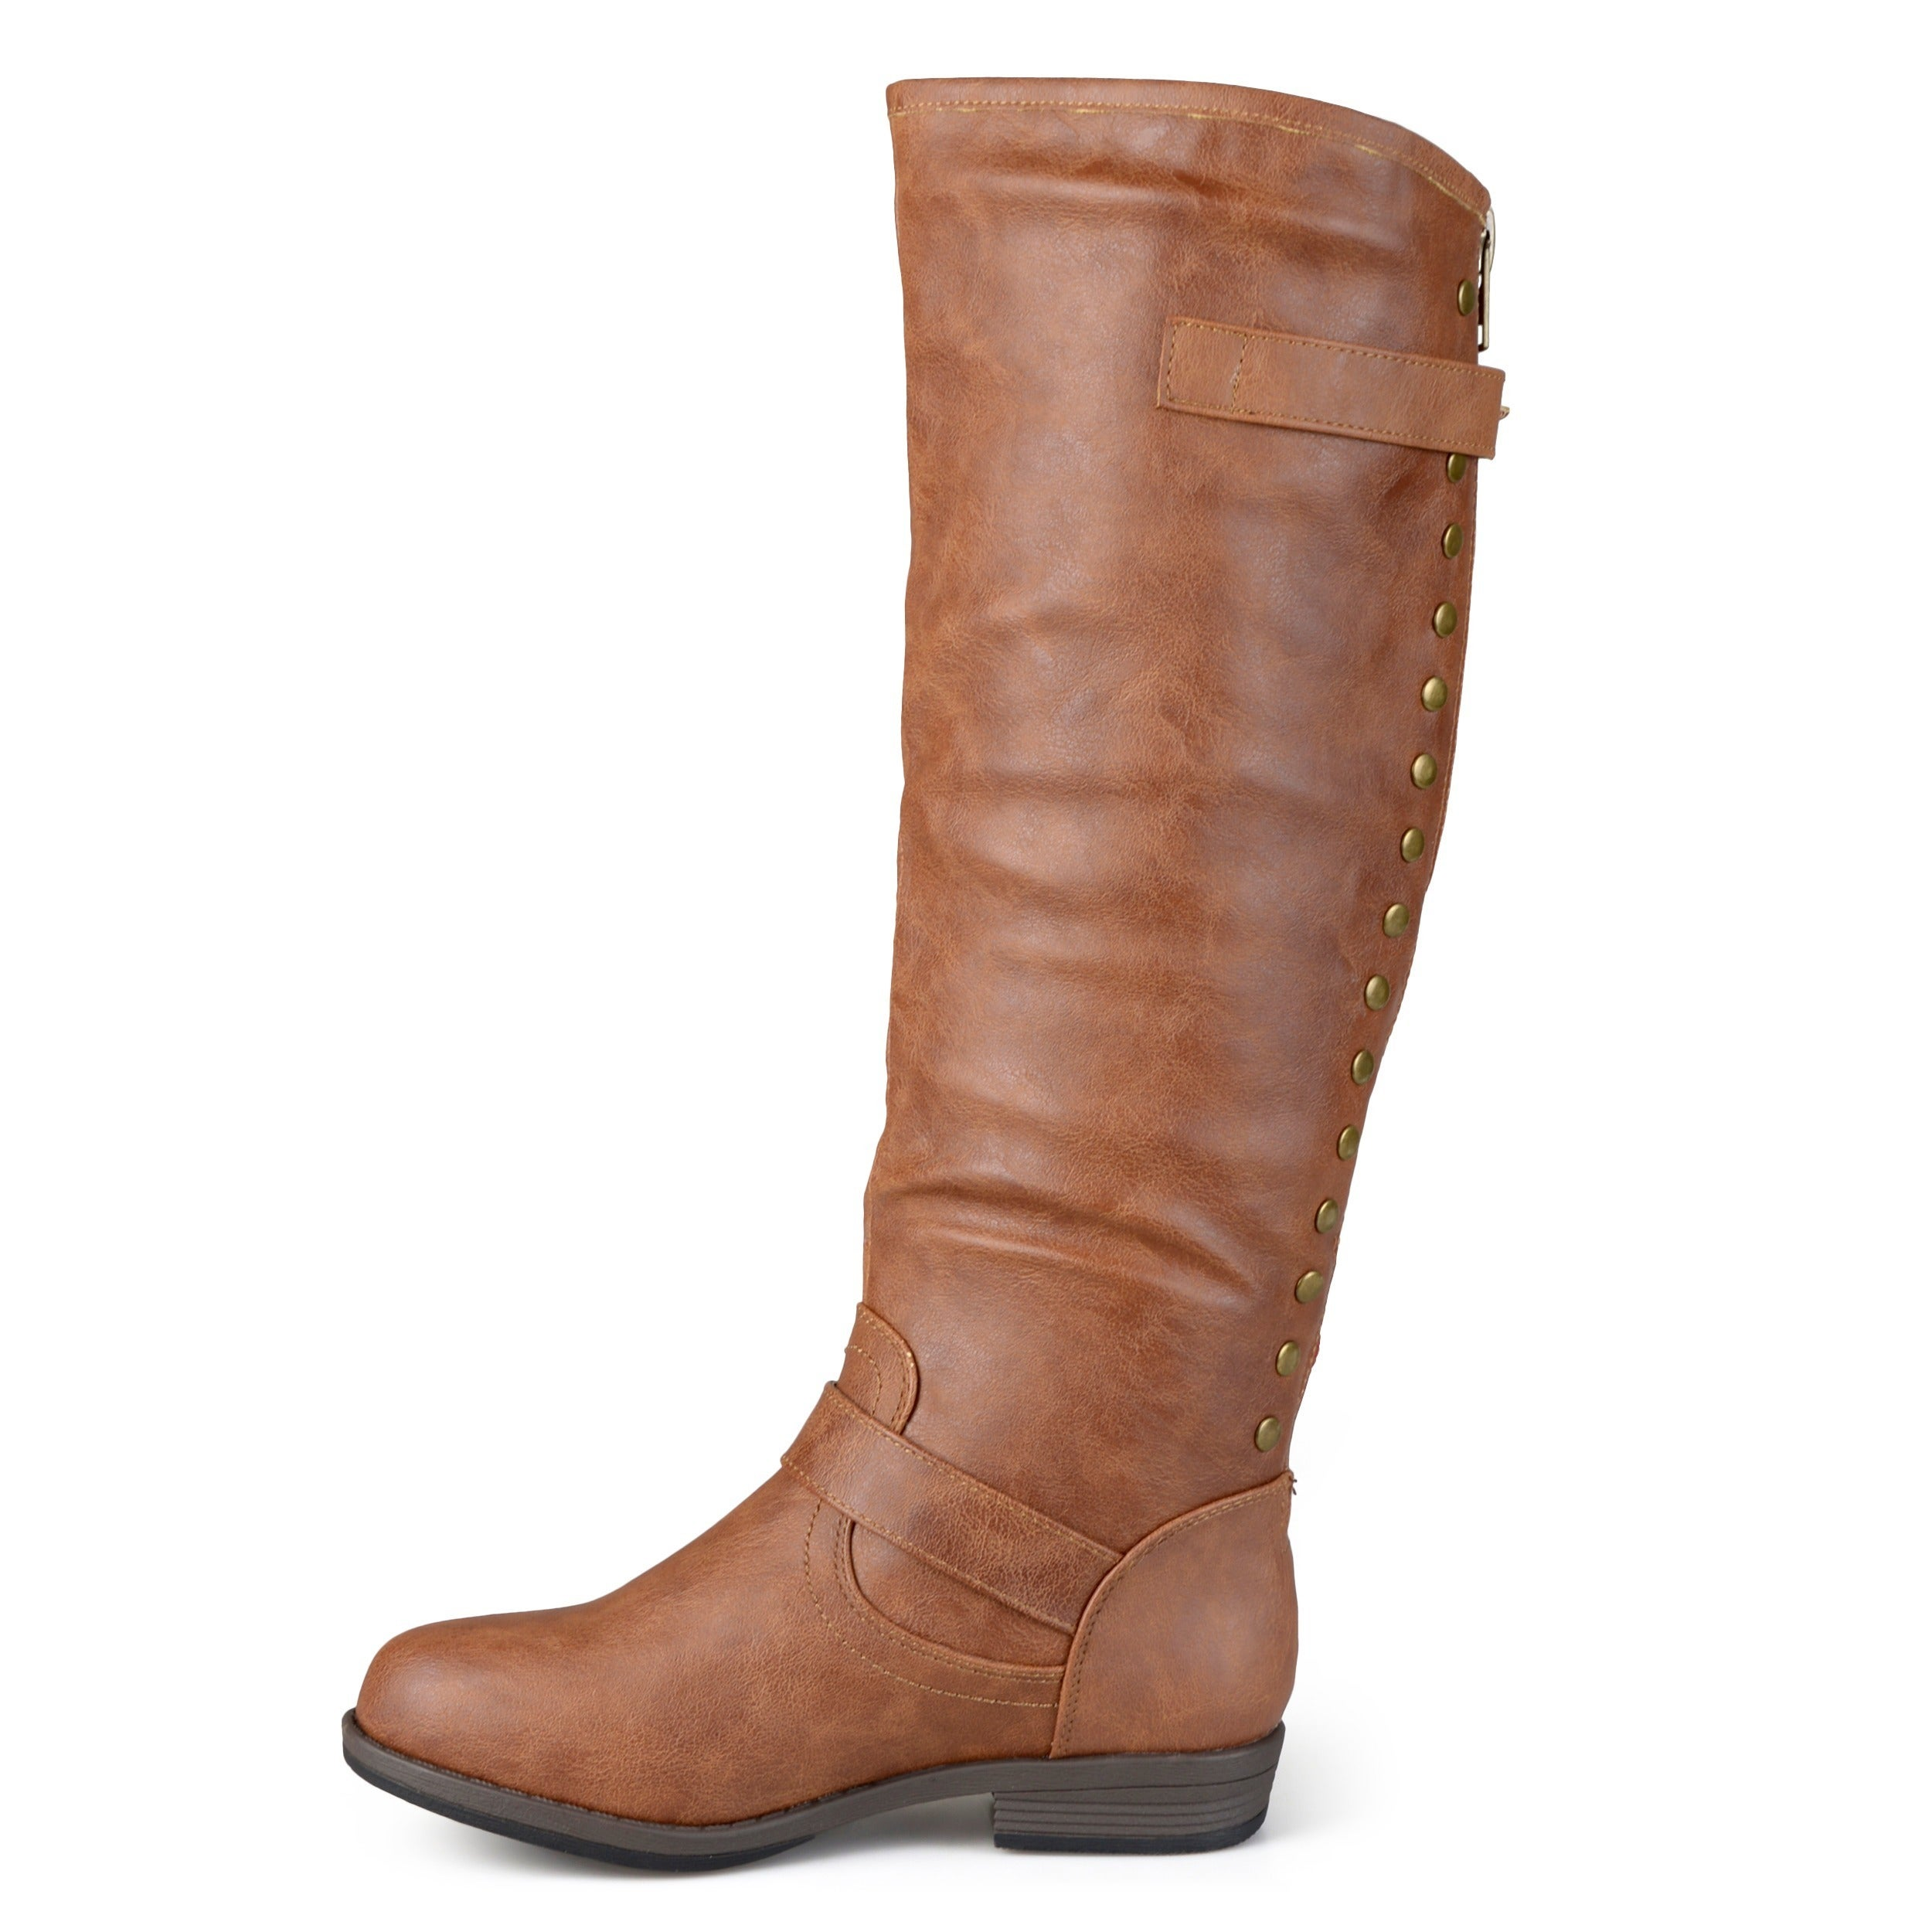 4fa2b1e3608d1 Shop Journee Collection Women's 'Spokane' Red Zipper Riding Boot - Free  Shipping Today - Overstock - 8342906